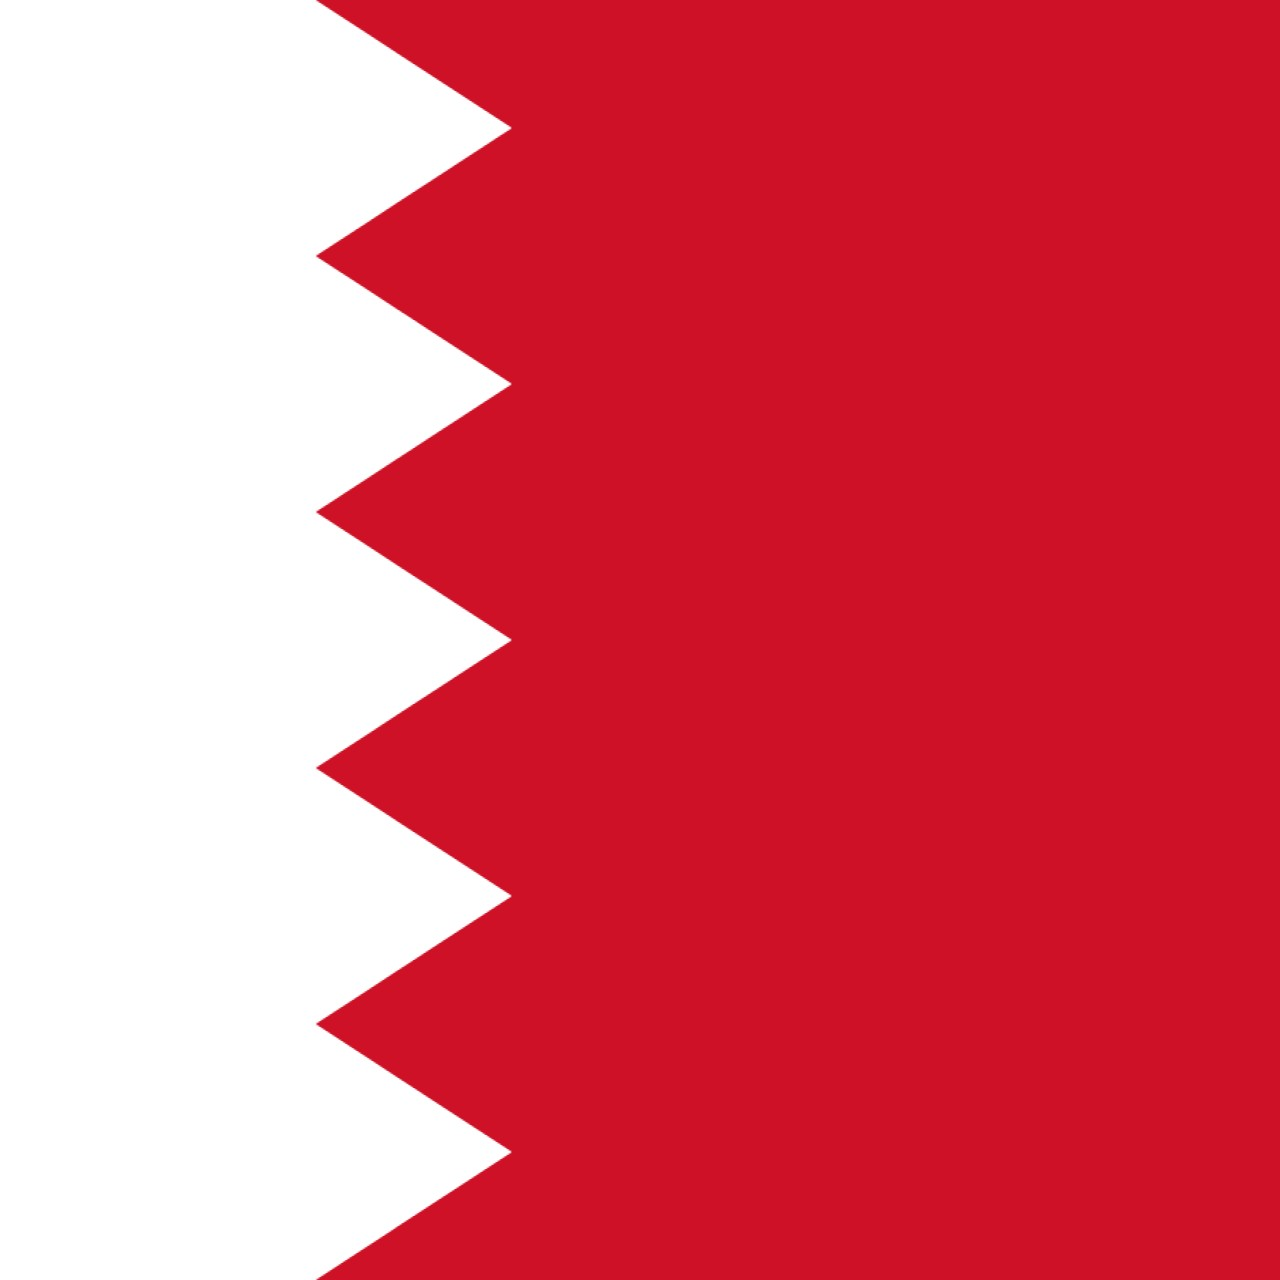 Flag_of_Bahrain